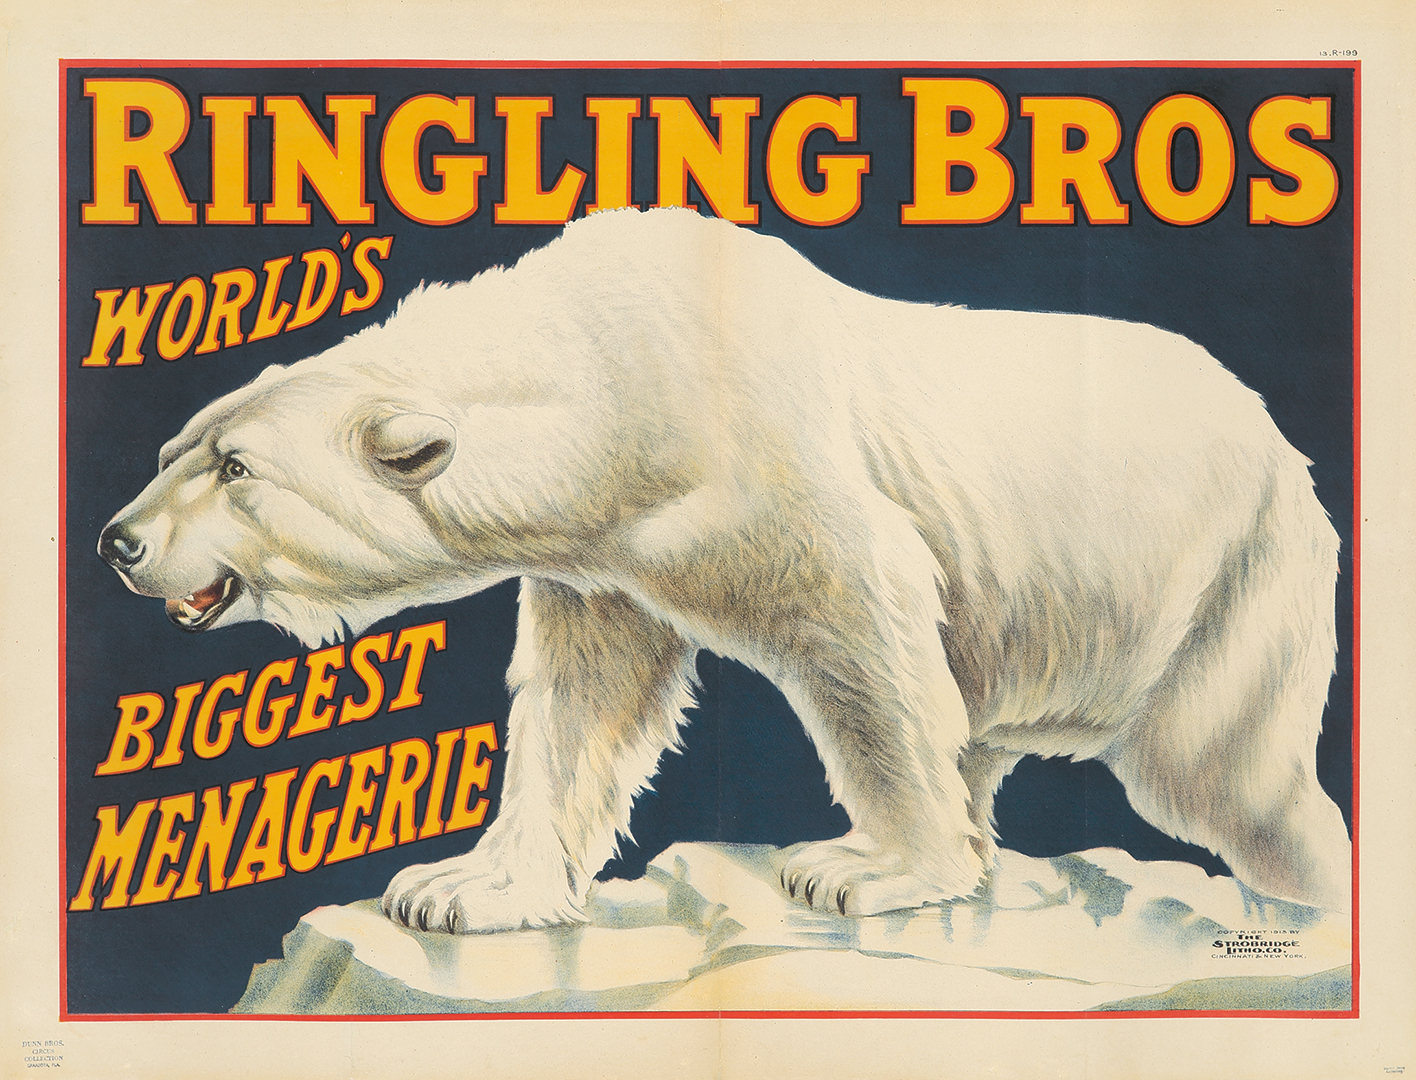 27. Ringling Brothers / Biggest Menagerie. 1913.